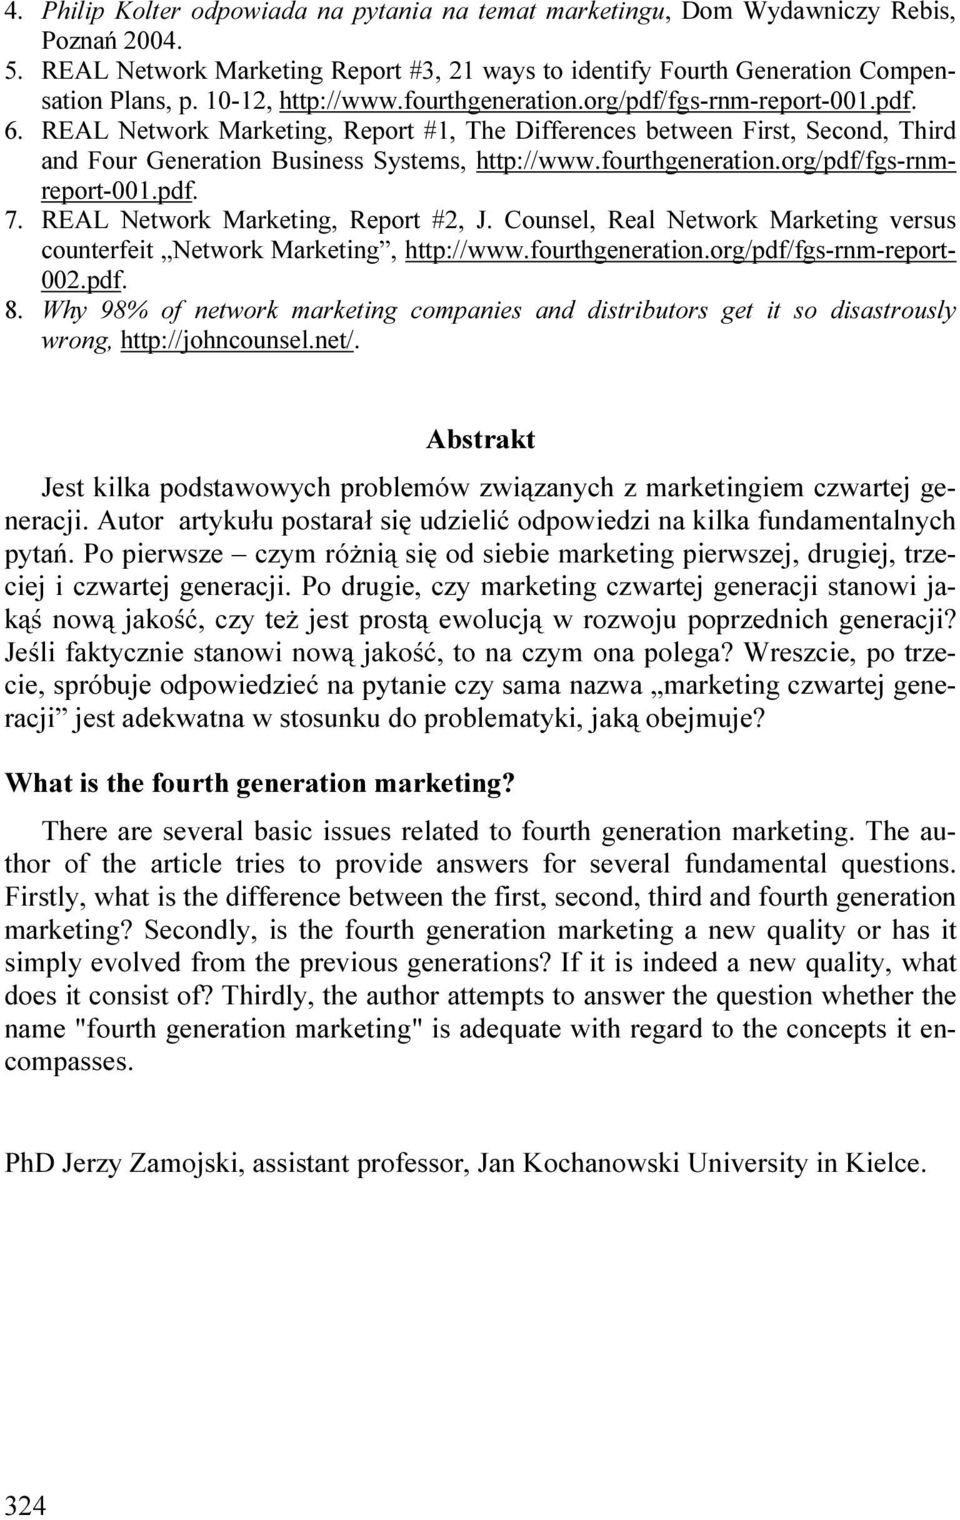 fourthgeneration.org/pdf/fgs-rnmreport-001.pdf. 7. REAL Network Marketing, Report #2, J. Counsel, Real Network Marketing versus counterfeit Network Marketing, http://www.fourthgeneration.org/pdf/fgs-rnm-report- 002.